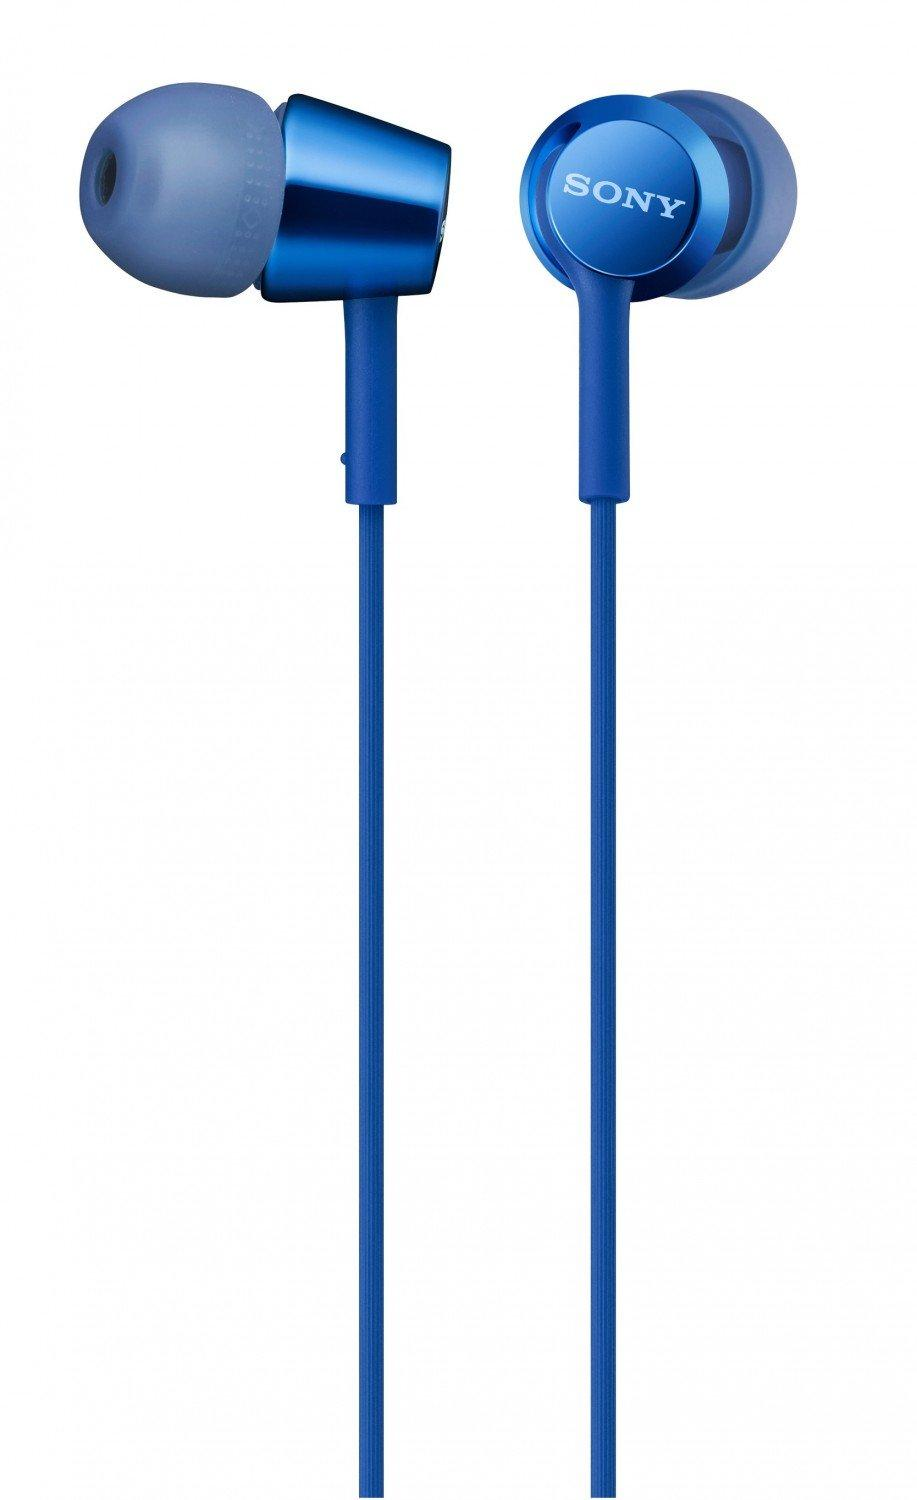 a6fc4e1ac91 Sony Original MDR-EX155AP Dark Blue In Ear Headphones with Mic - Headset  warna Biru